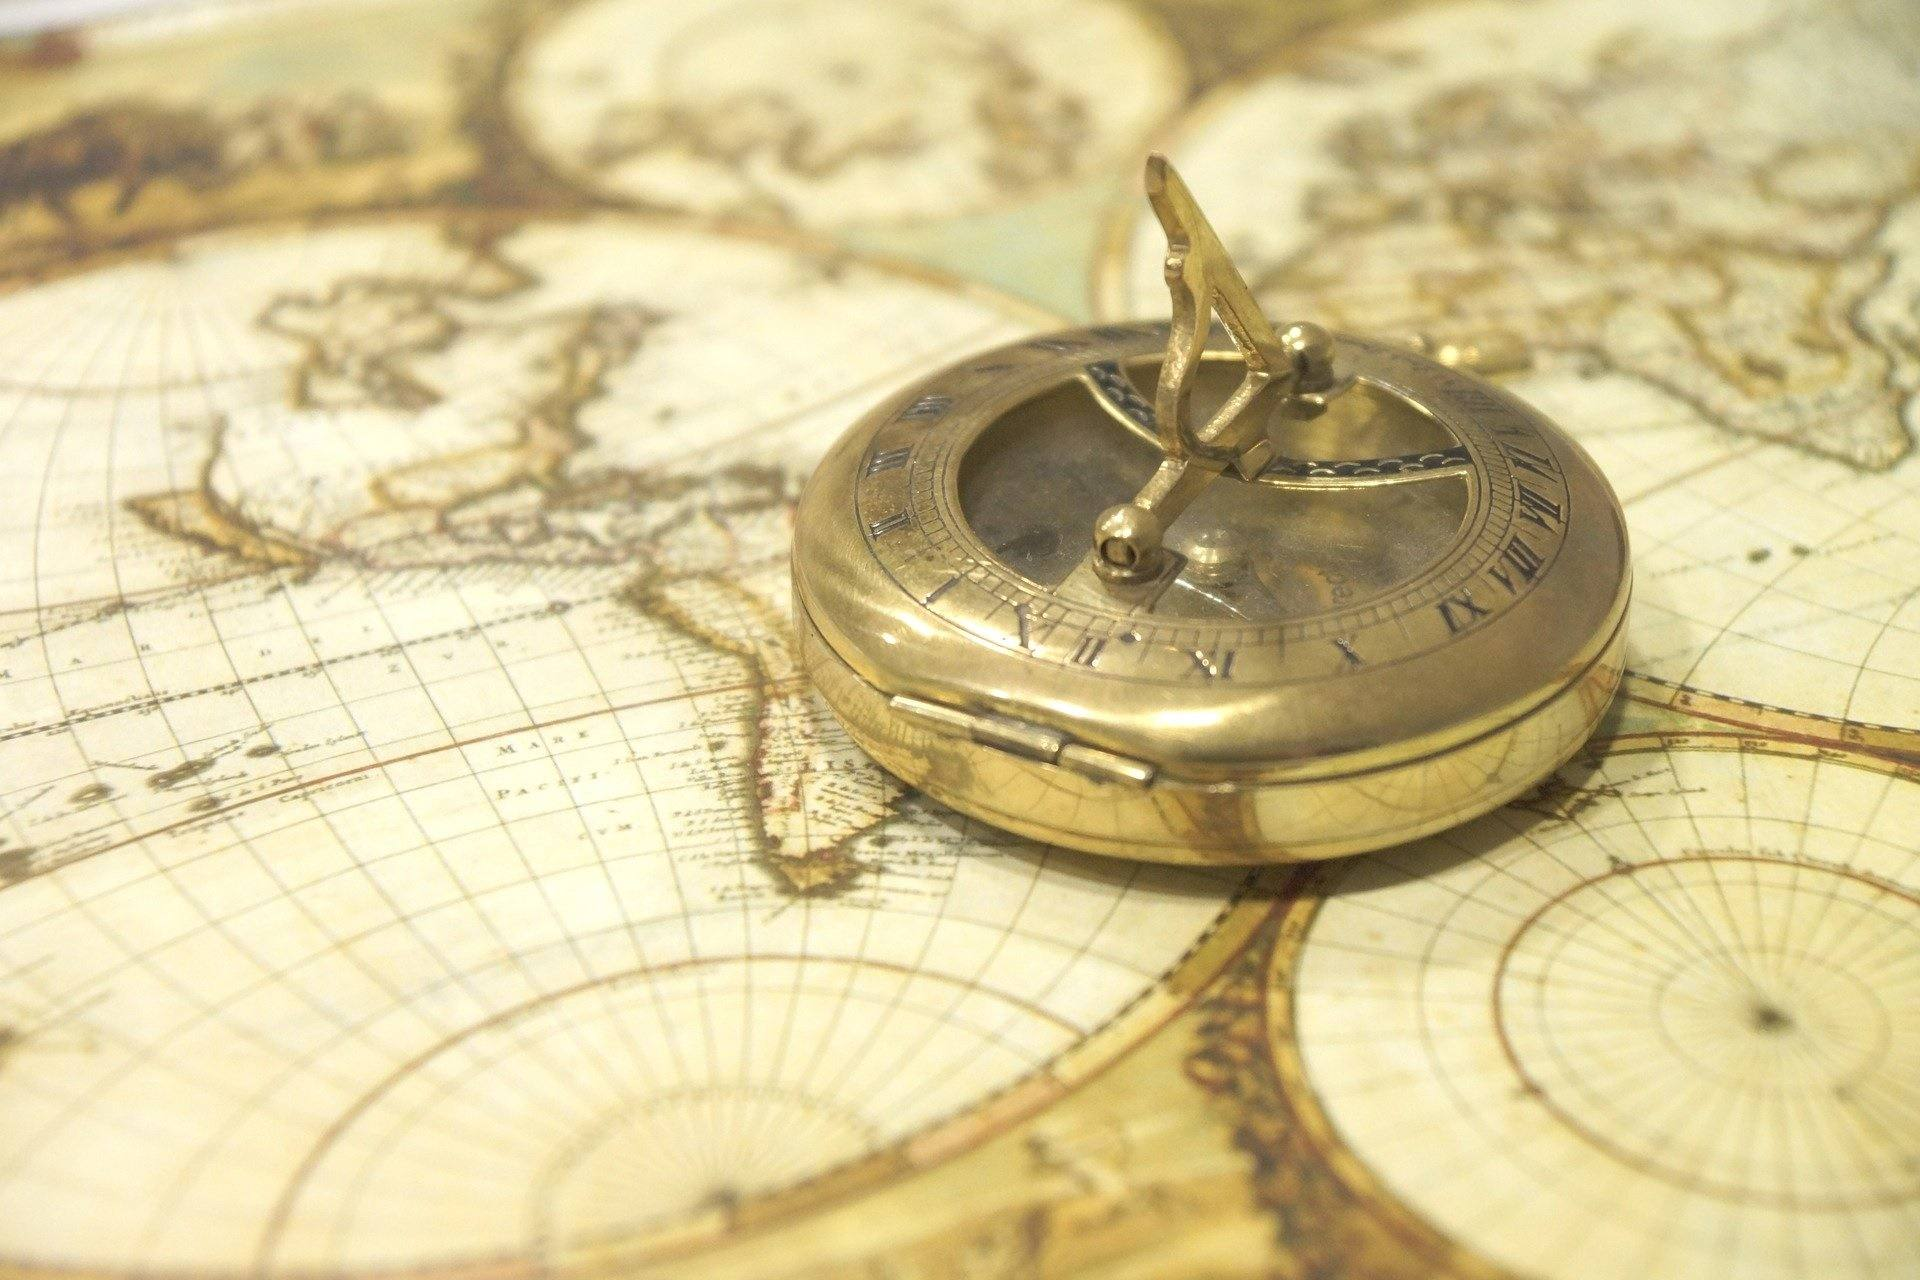 The Compass offers direction on biomedical issues